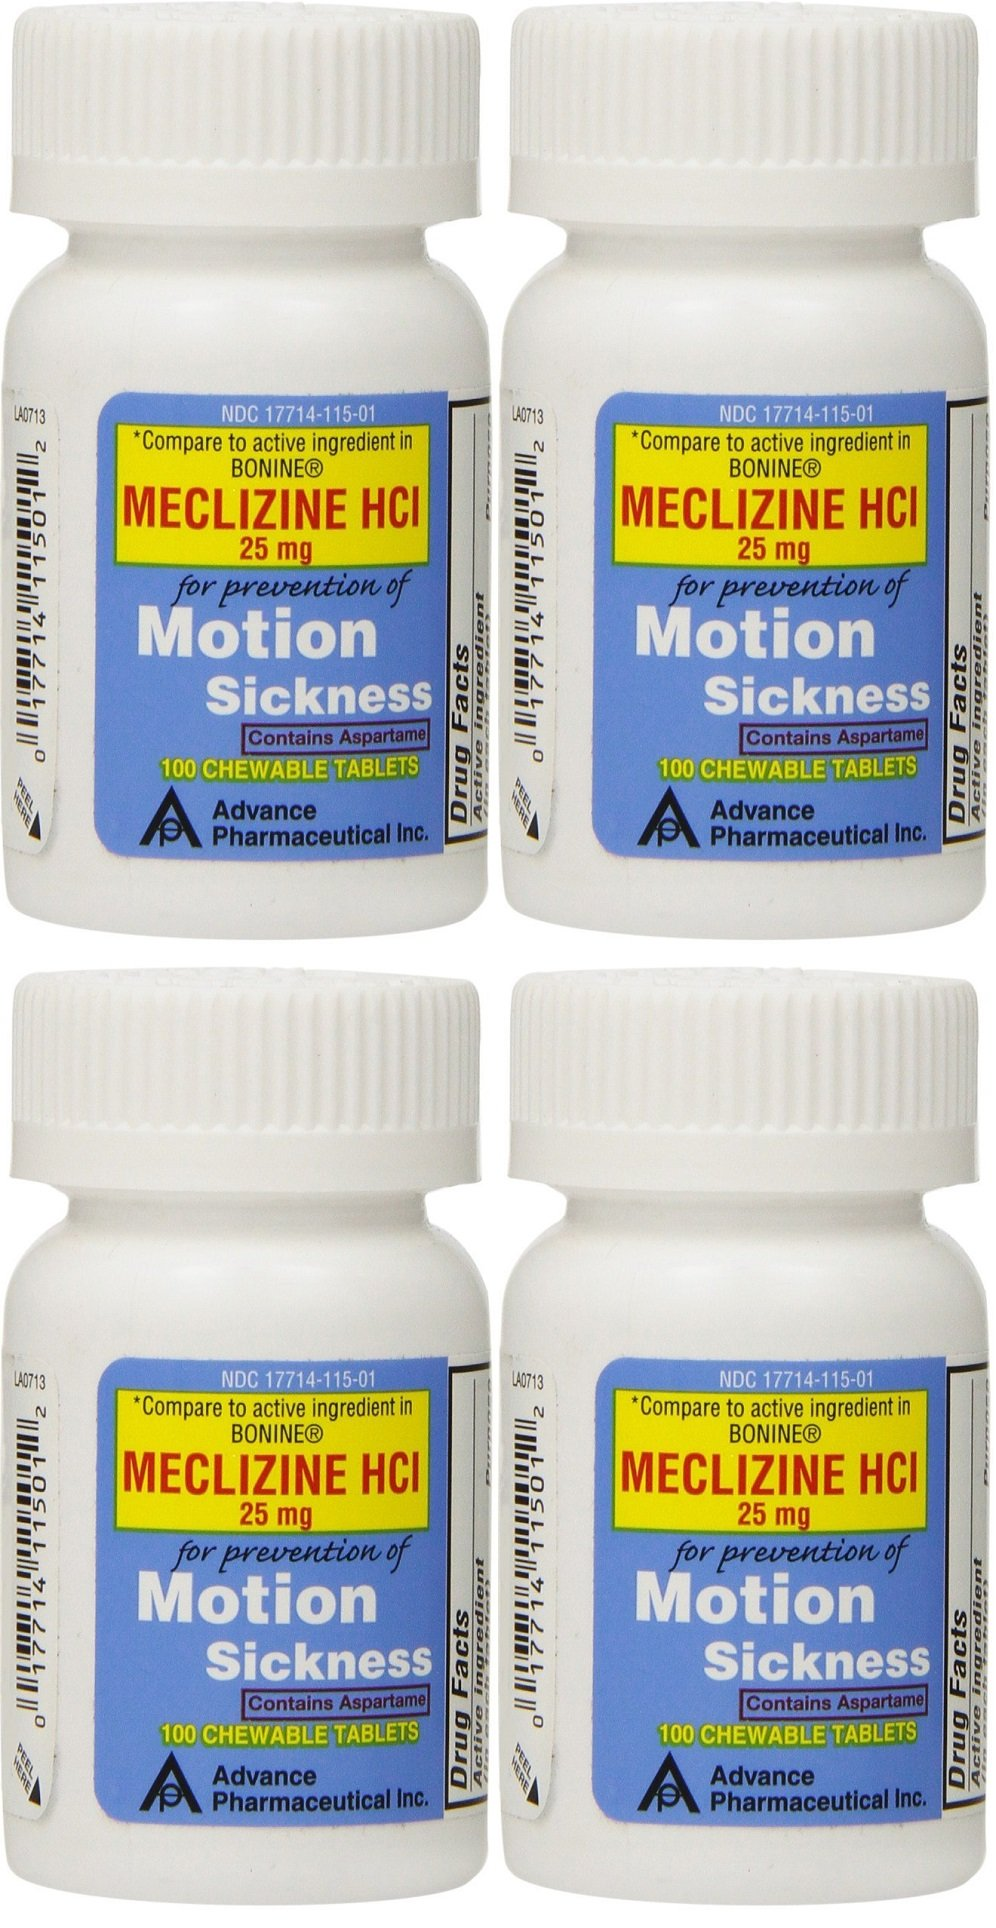 Meclizine 25 mg Generic For Bonine Chewable Tablets for Prevention of Motion Sickness and Anti-Nausea 100 Tablets per Bottle Pack of 4 Total 400 Tablets